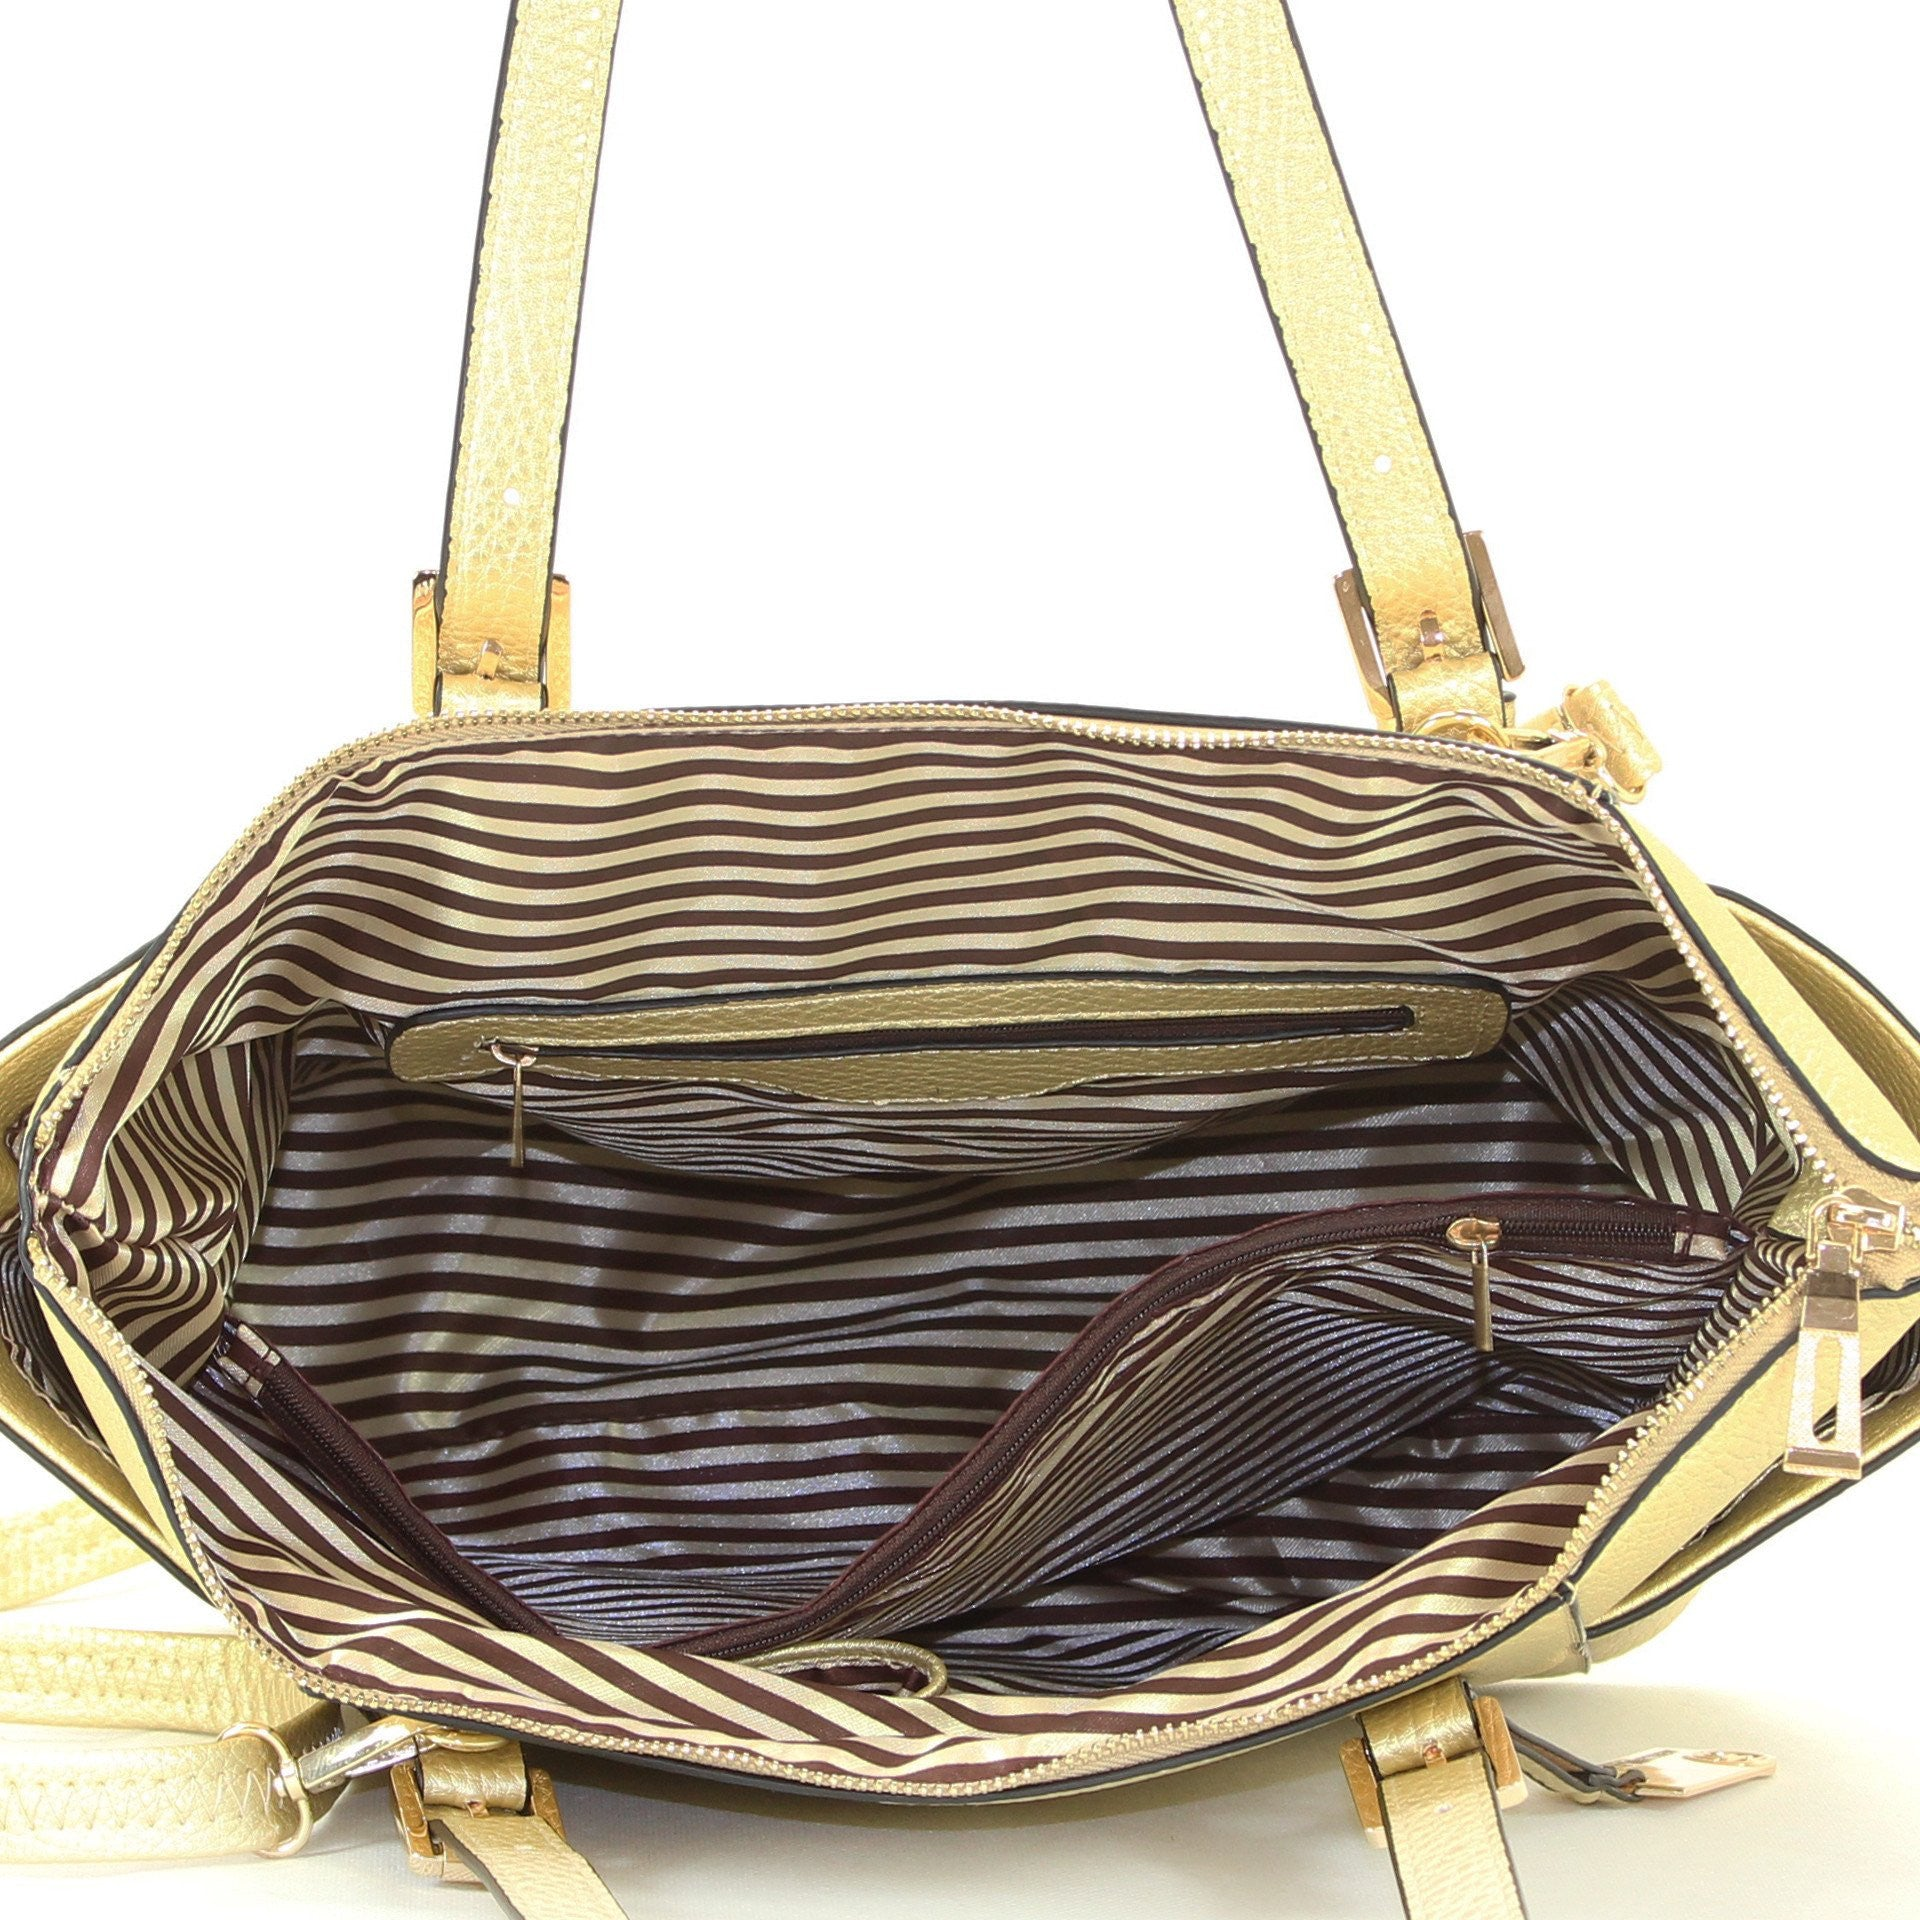 Handbag, Purse, Tote, Shoulder Bag - Robert Matthew Khloe Tote - Gold Flake